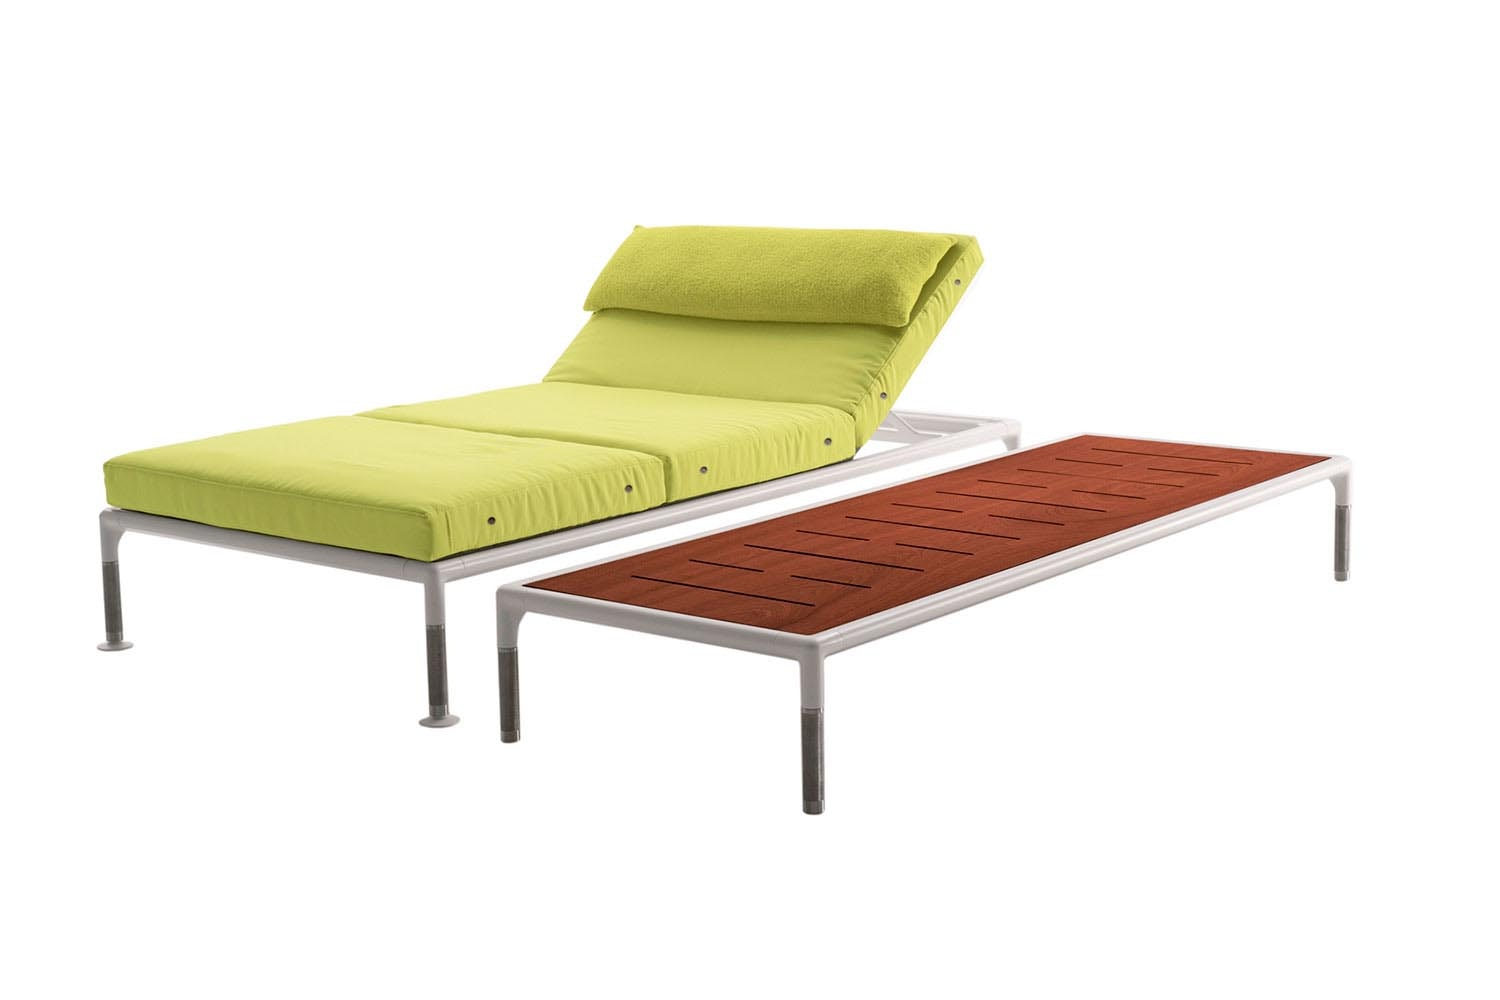 Springtime Coffee Table by Jean-Marie Massaud for B&B Italia